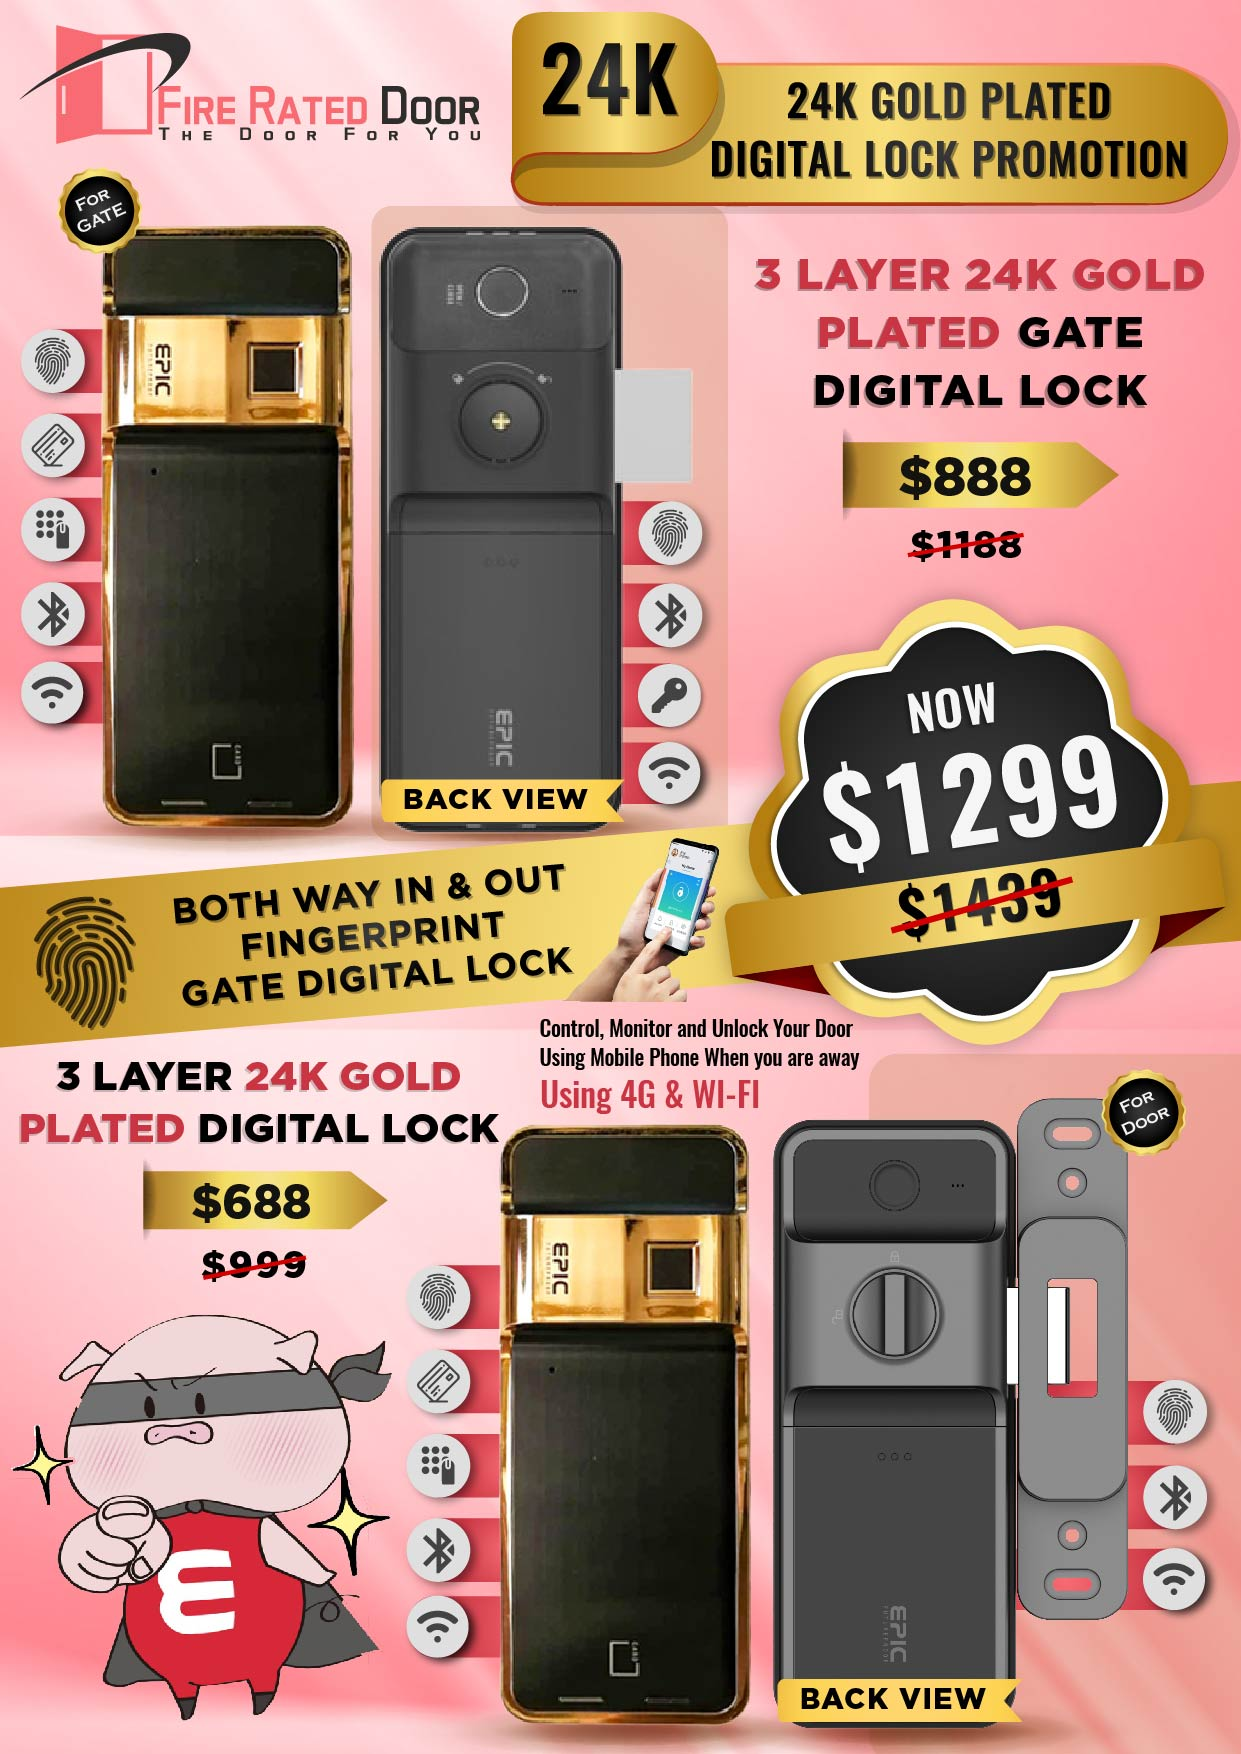 24K Gold Plated Gate and Door Digital Lock Promotions